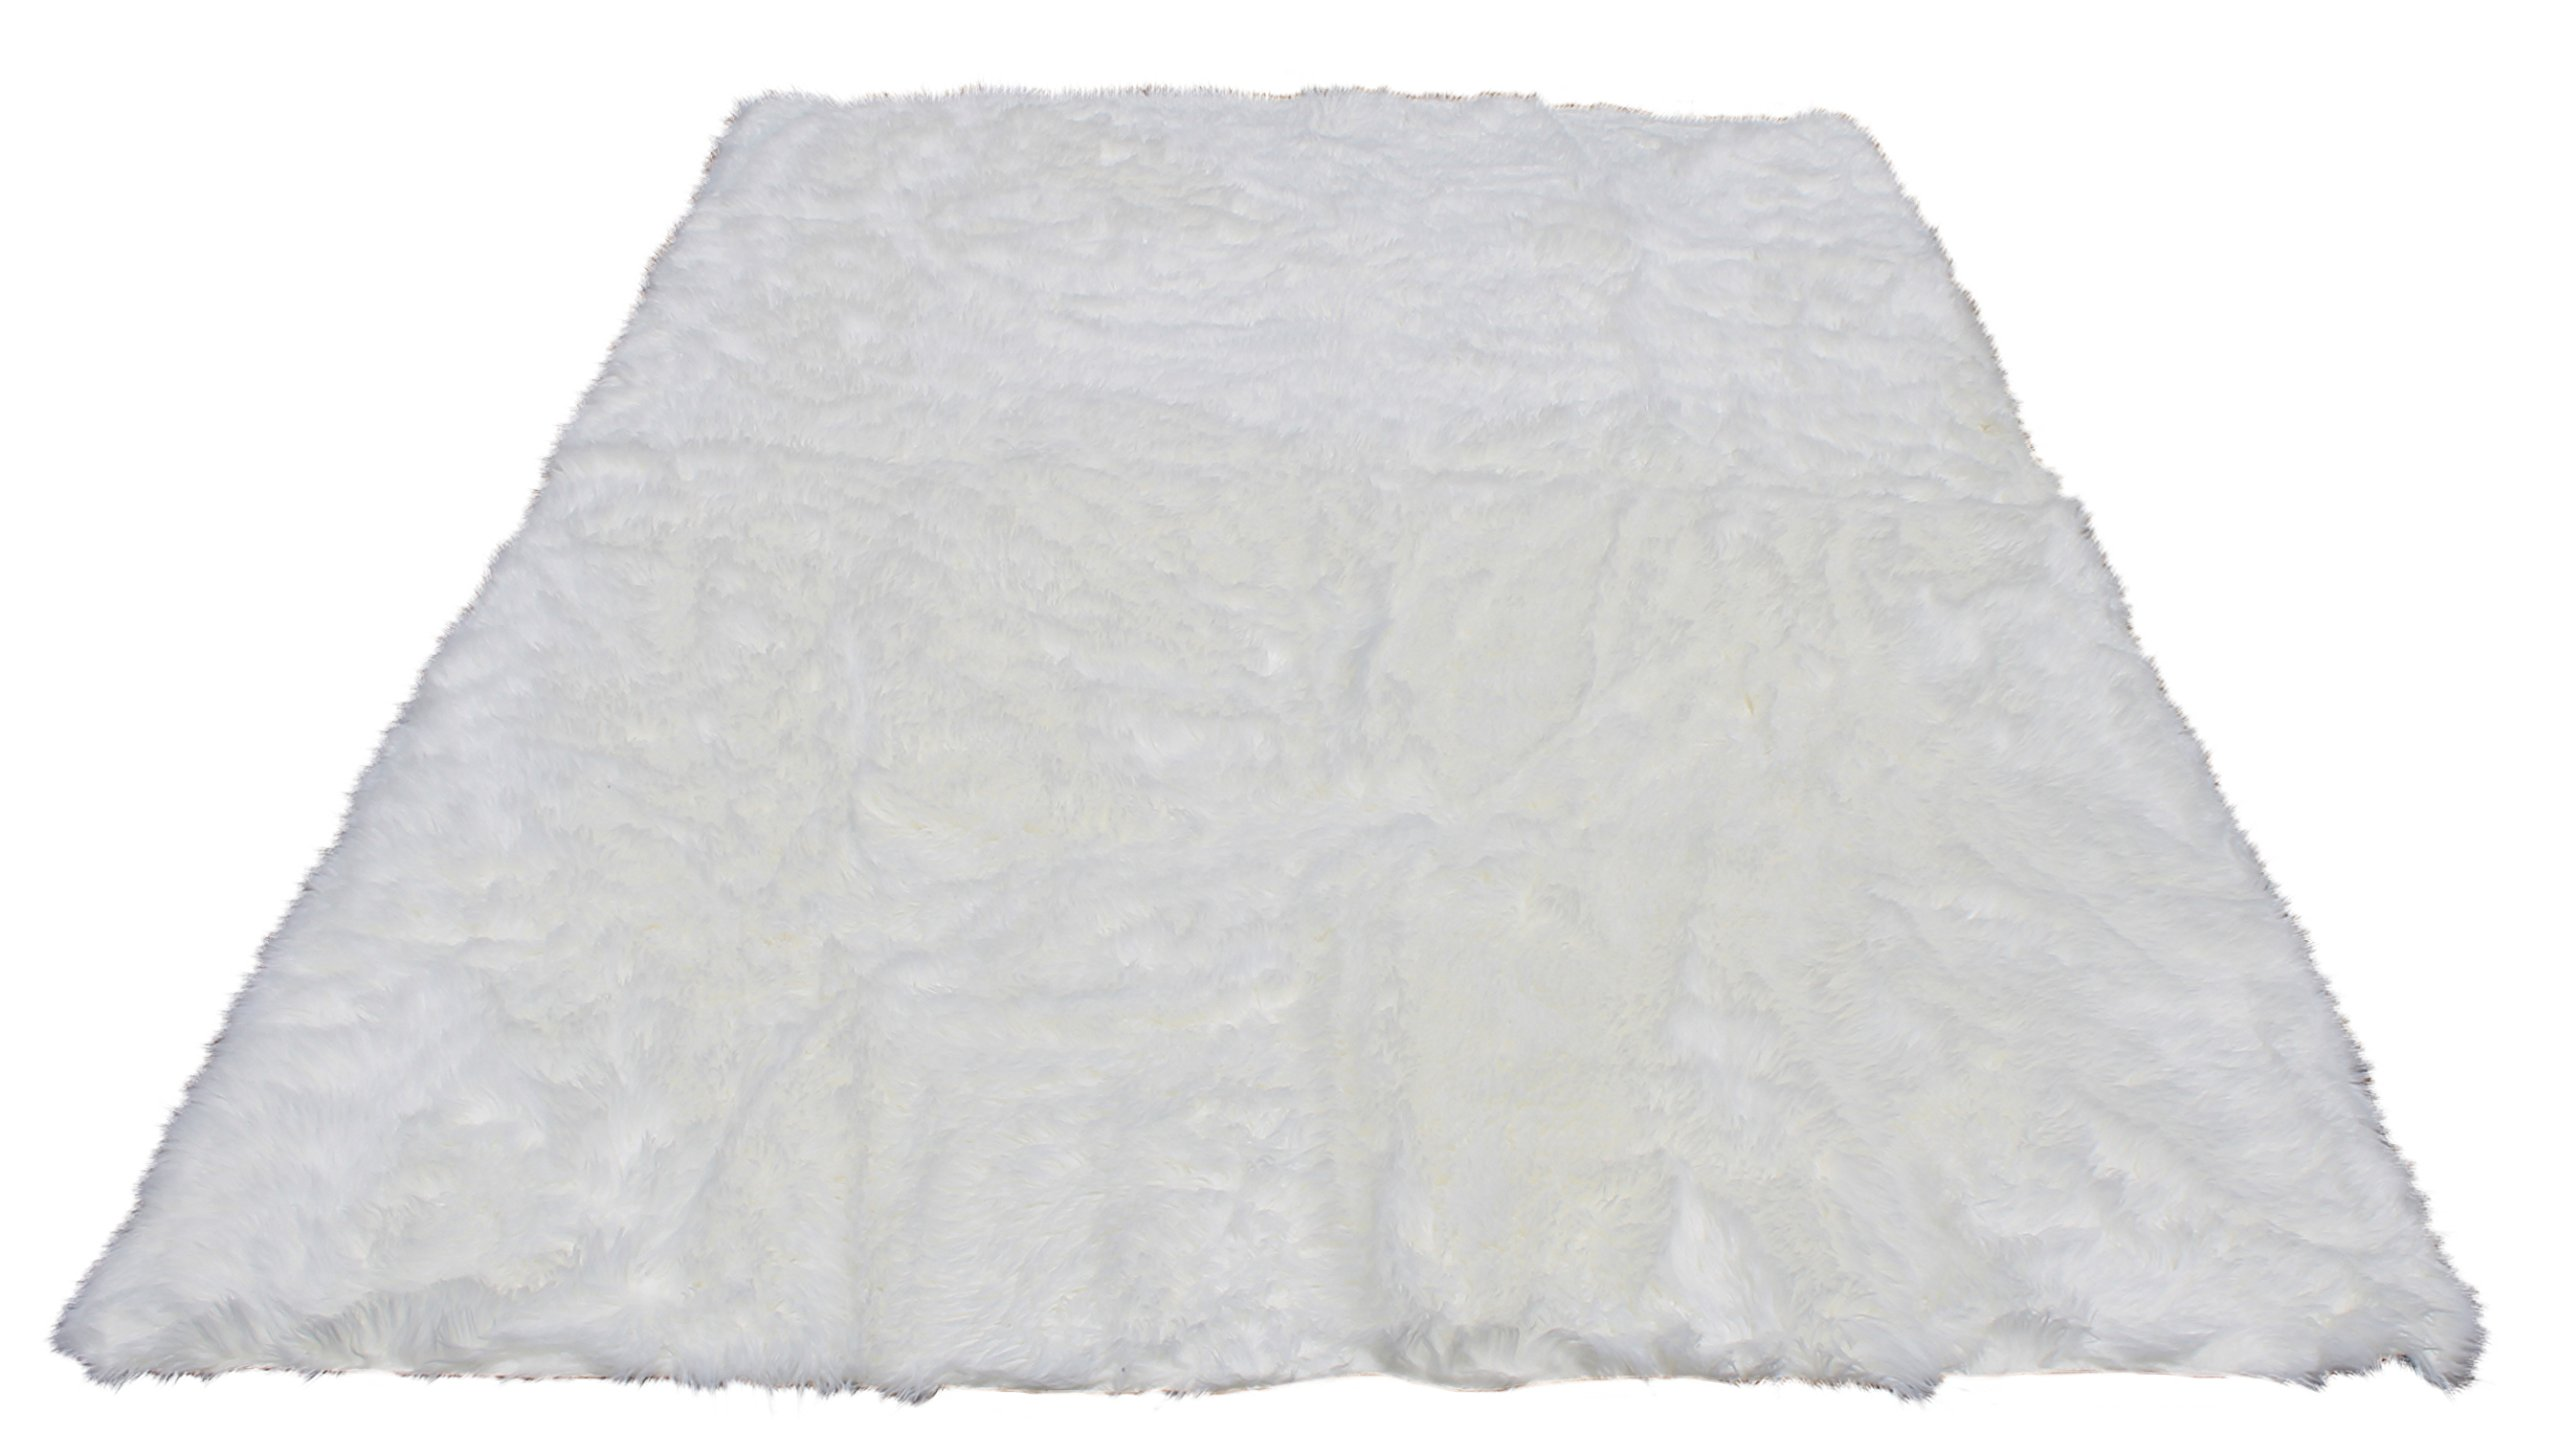 Silky Super Soft White Faux Sheepskin Shag Area Rug Machine Washable - Great for Photography or Bedroom Decor- Get The Real Look Without Harming Animals (6 feet x 9 feet Rectangle)